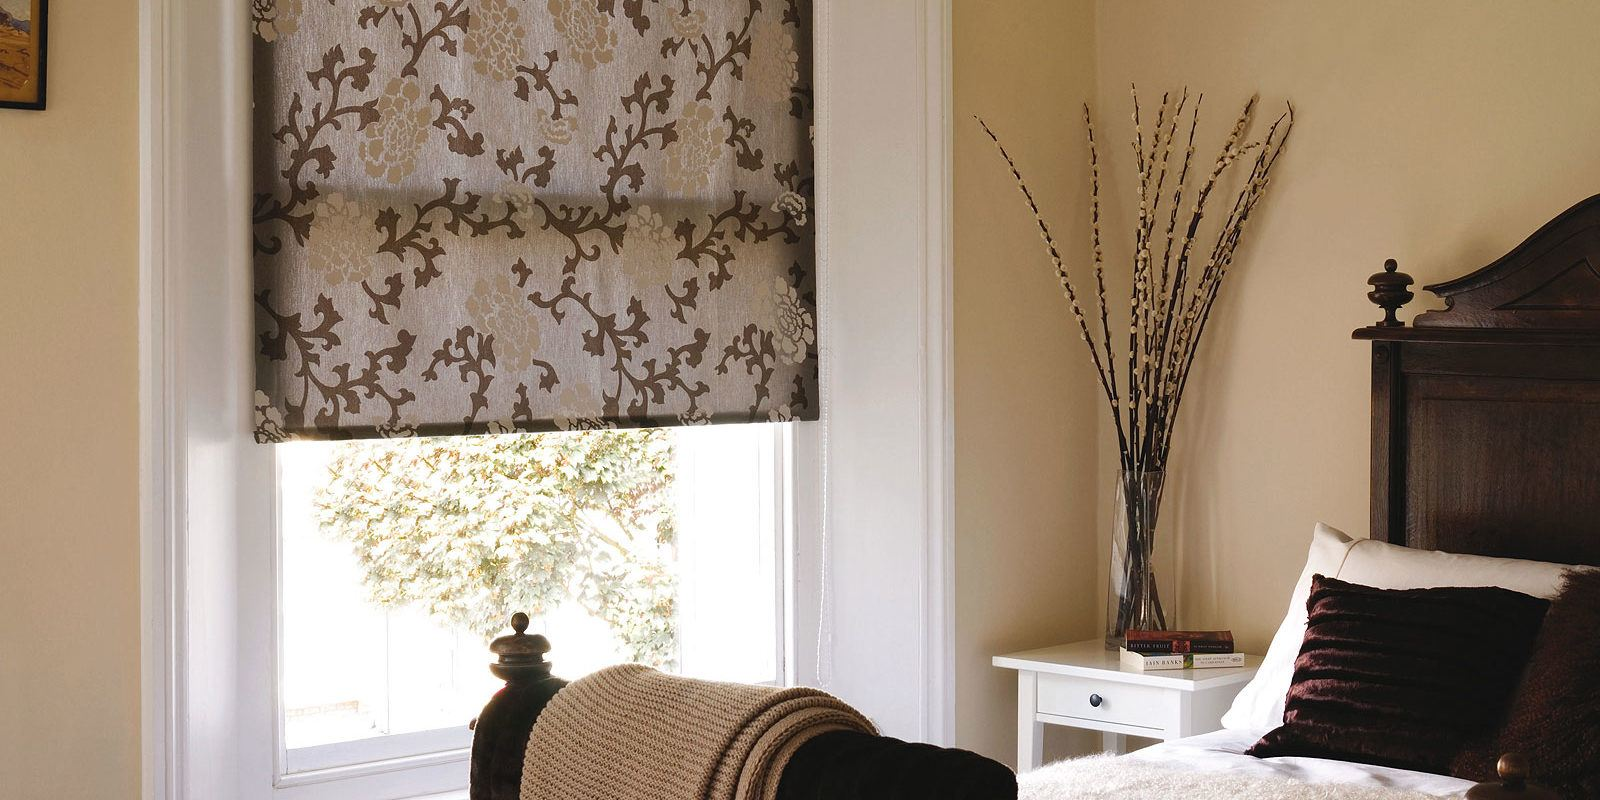 Roller blinds with floral pattern for small bedroom